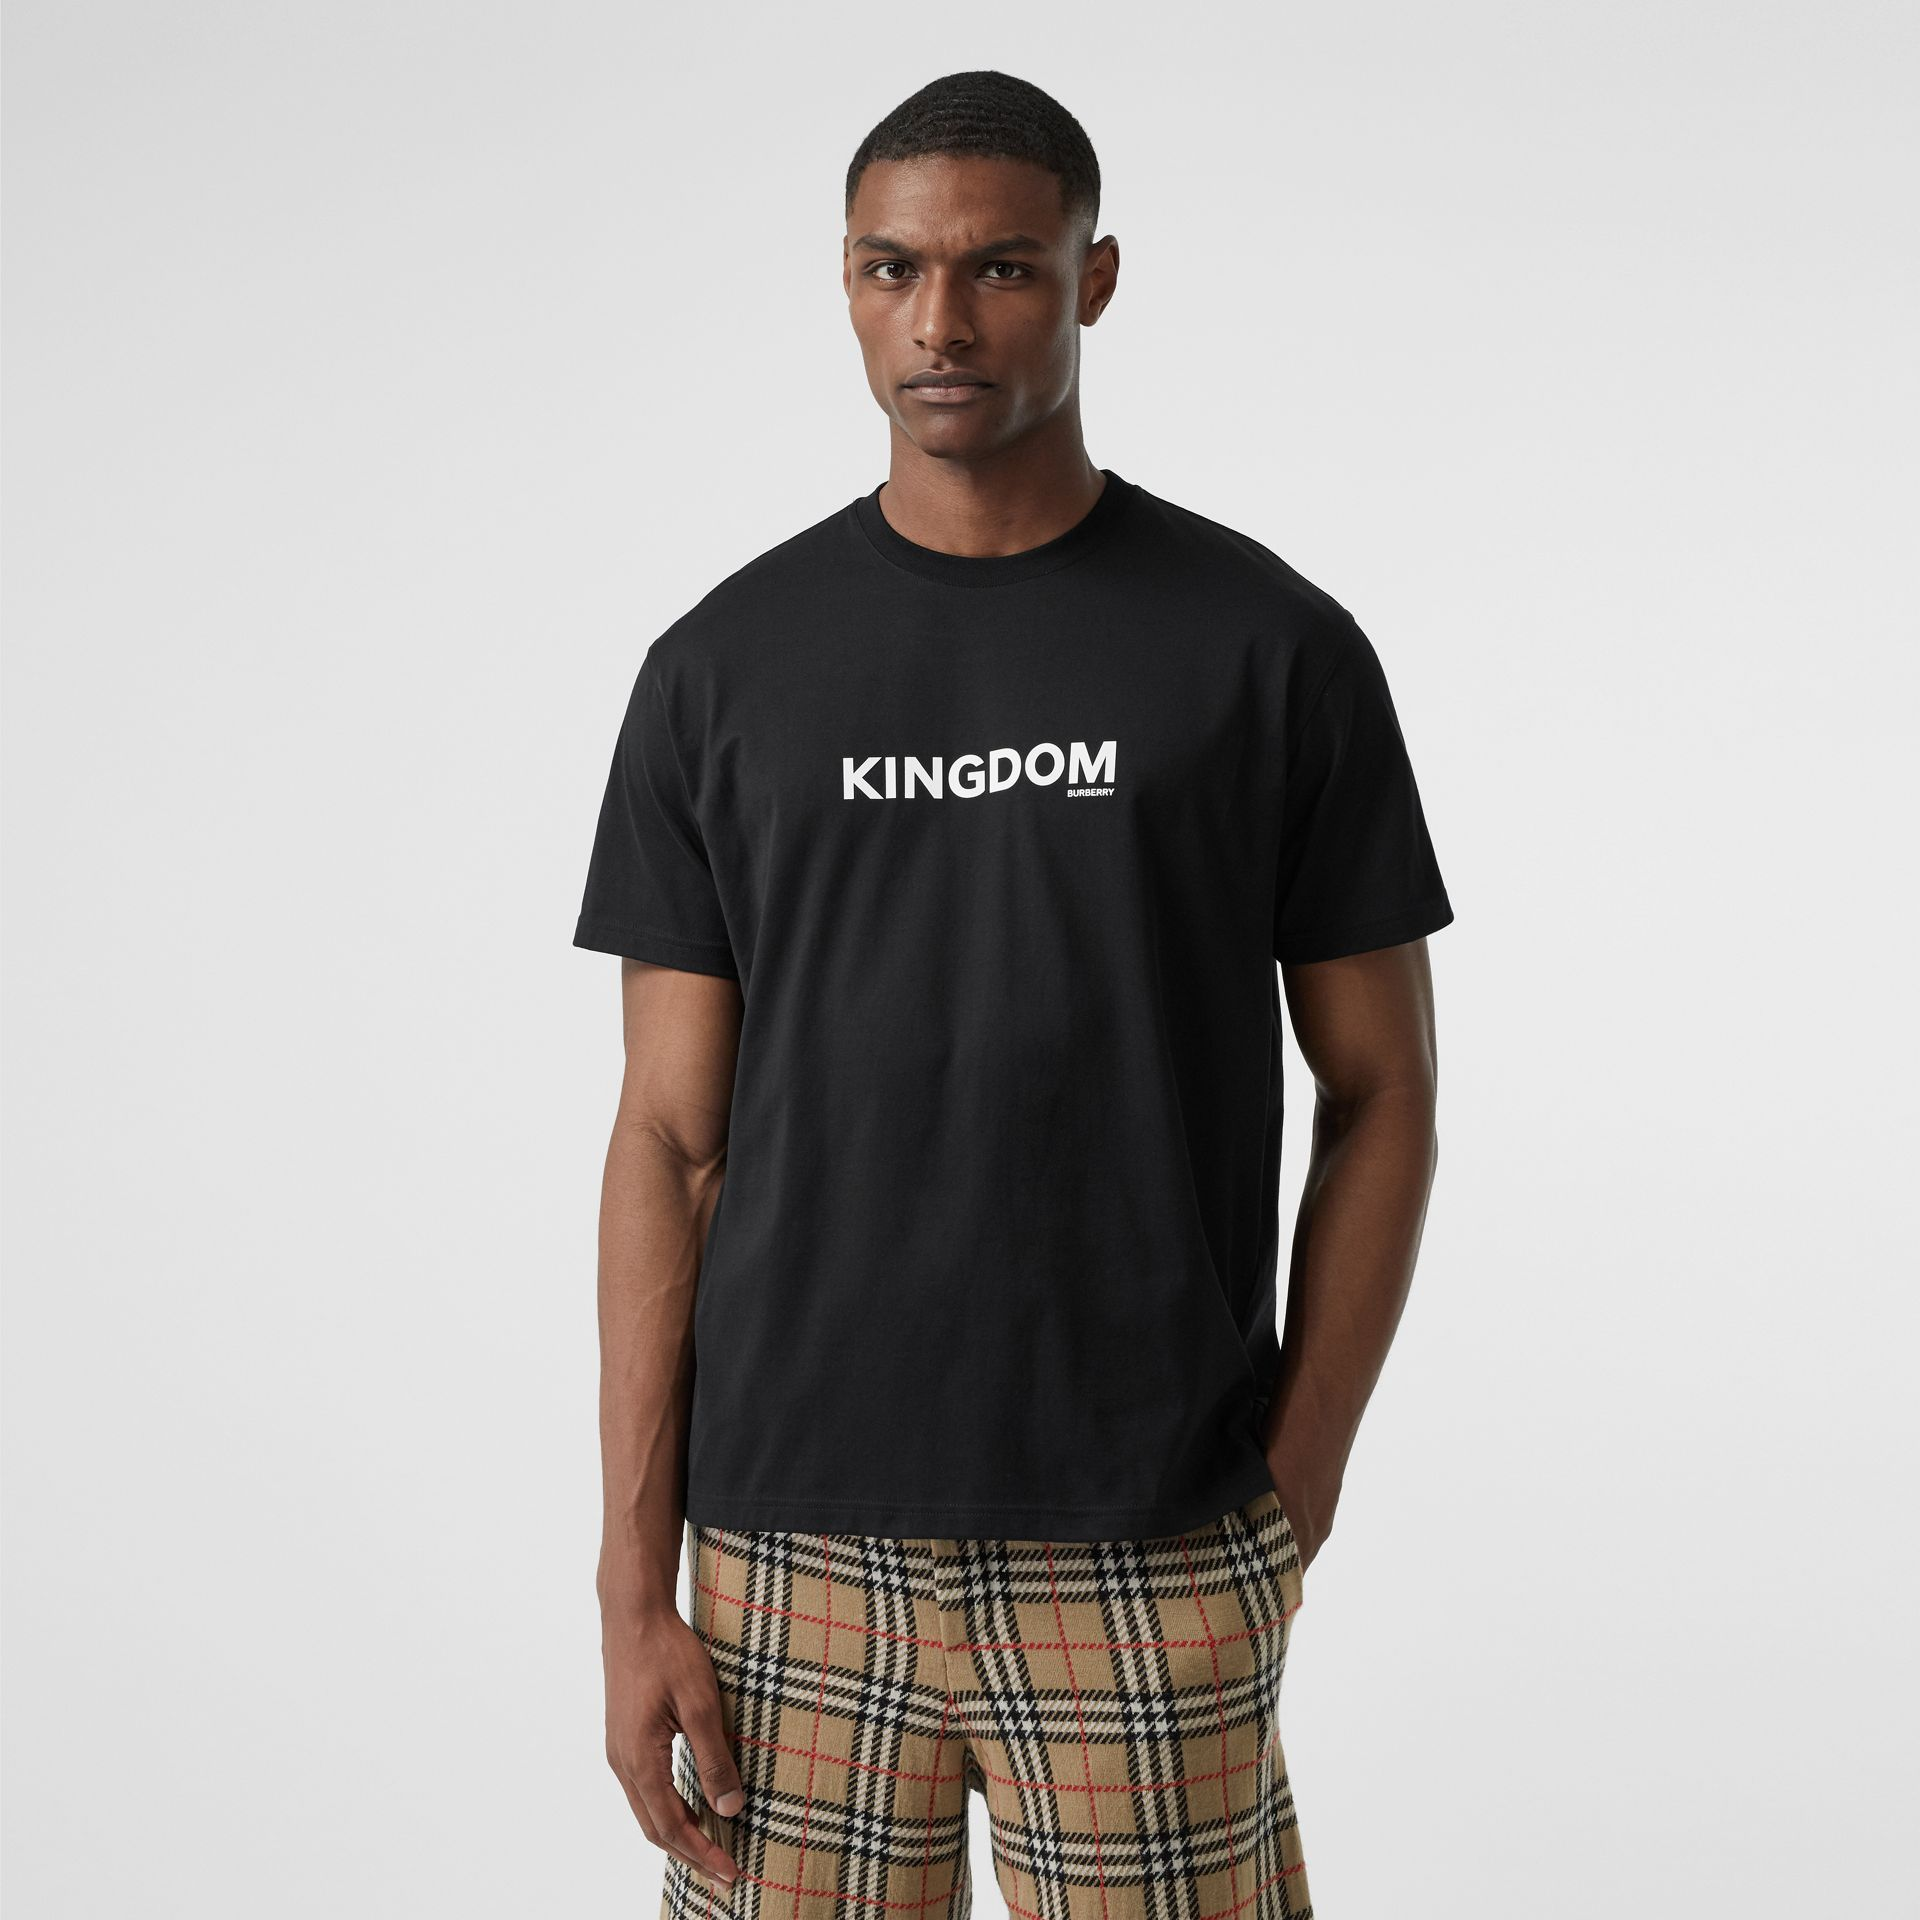 Kingdom Print Cotton T-shirt in Black - Men | Burberry - gallery image 4